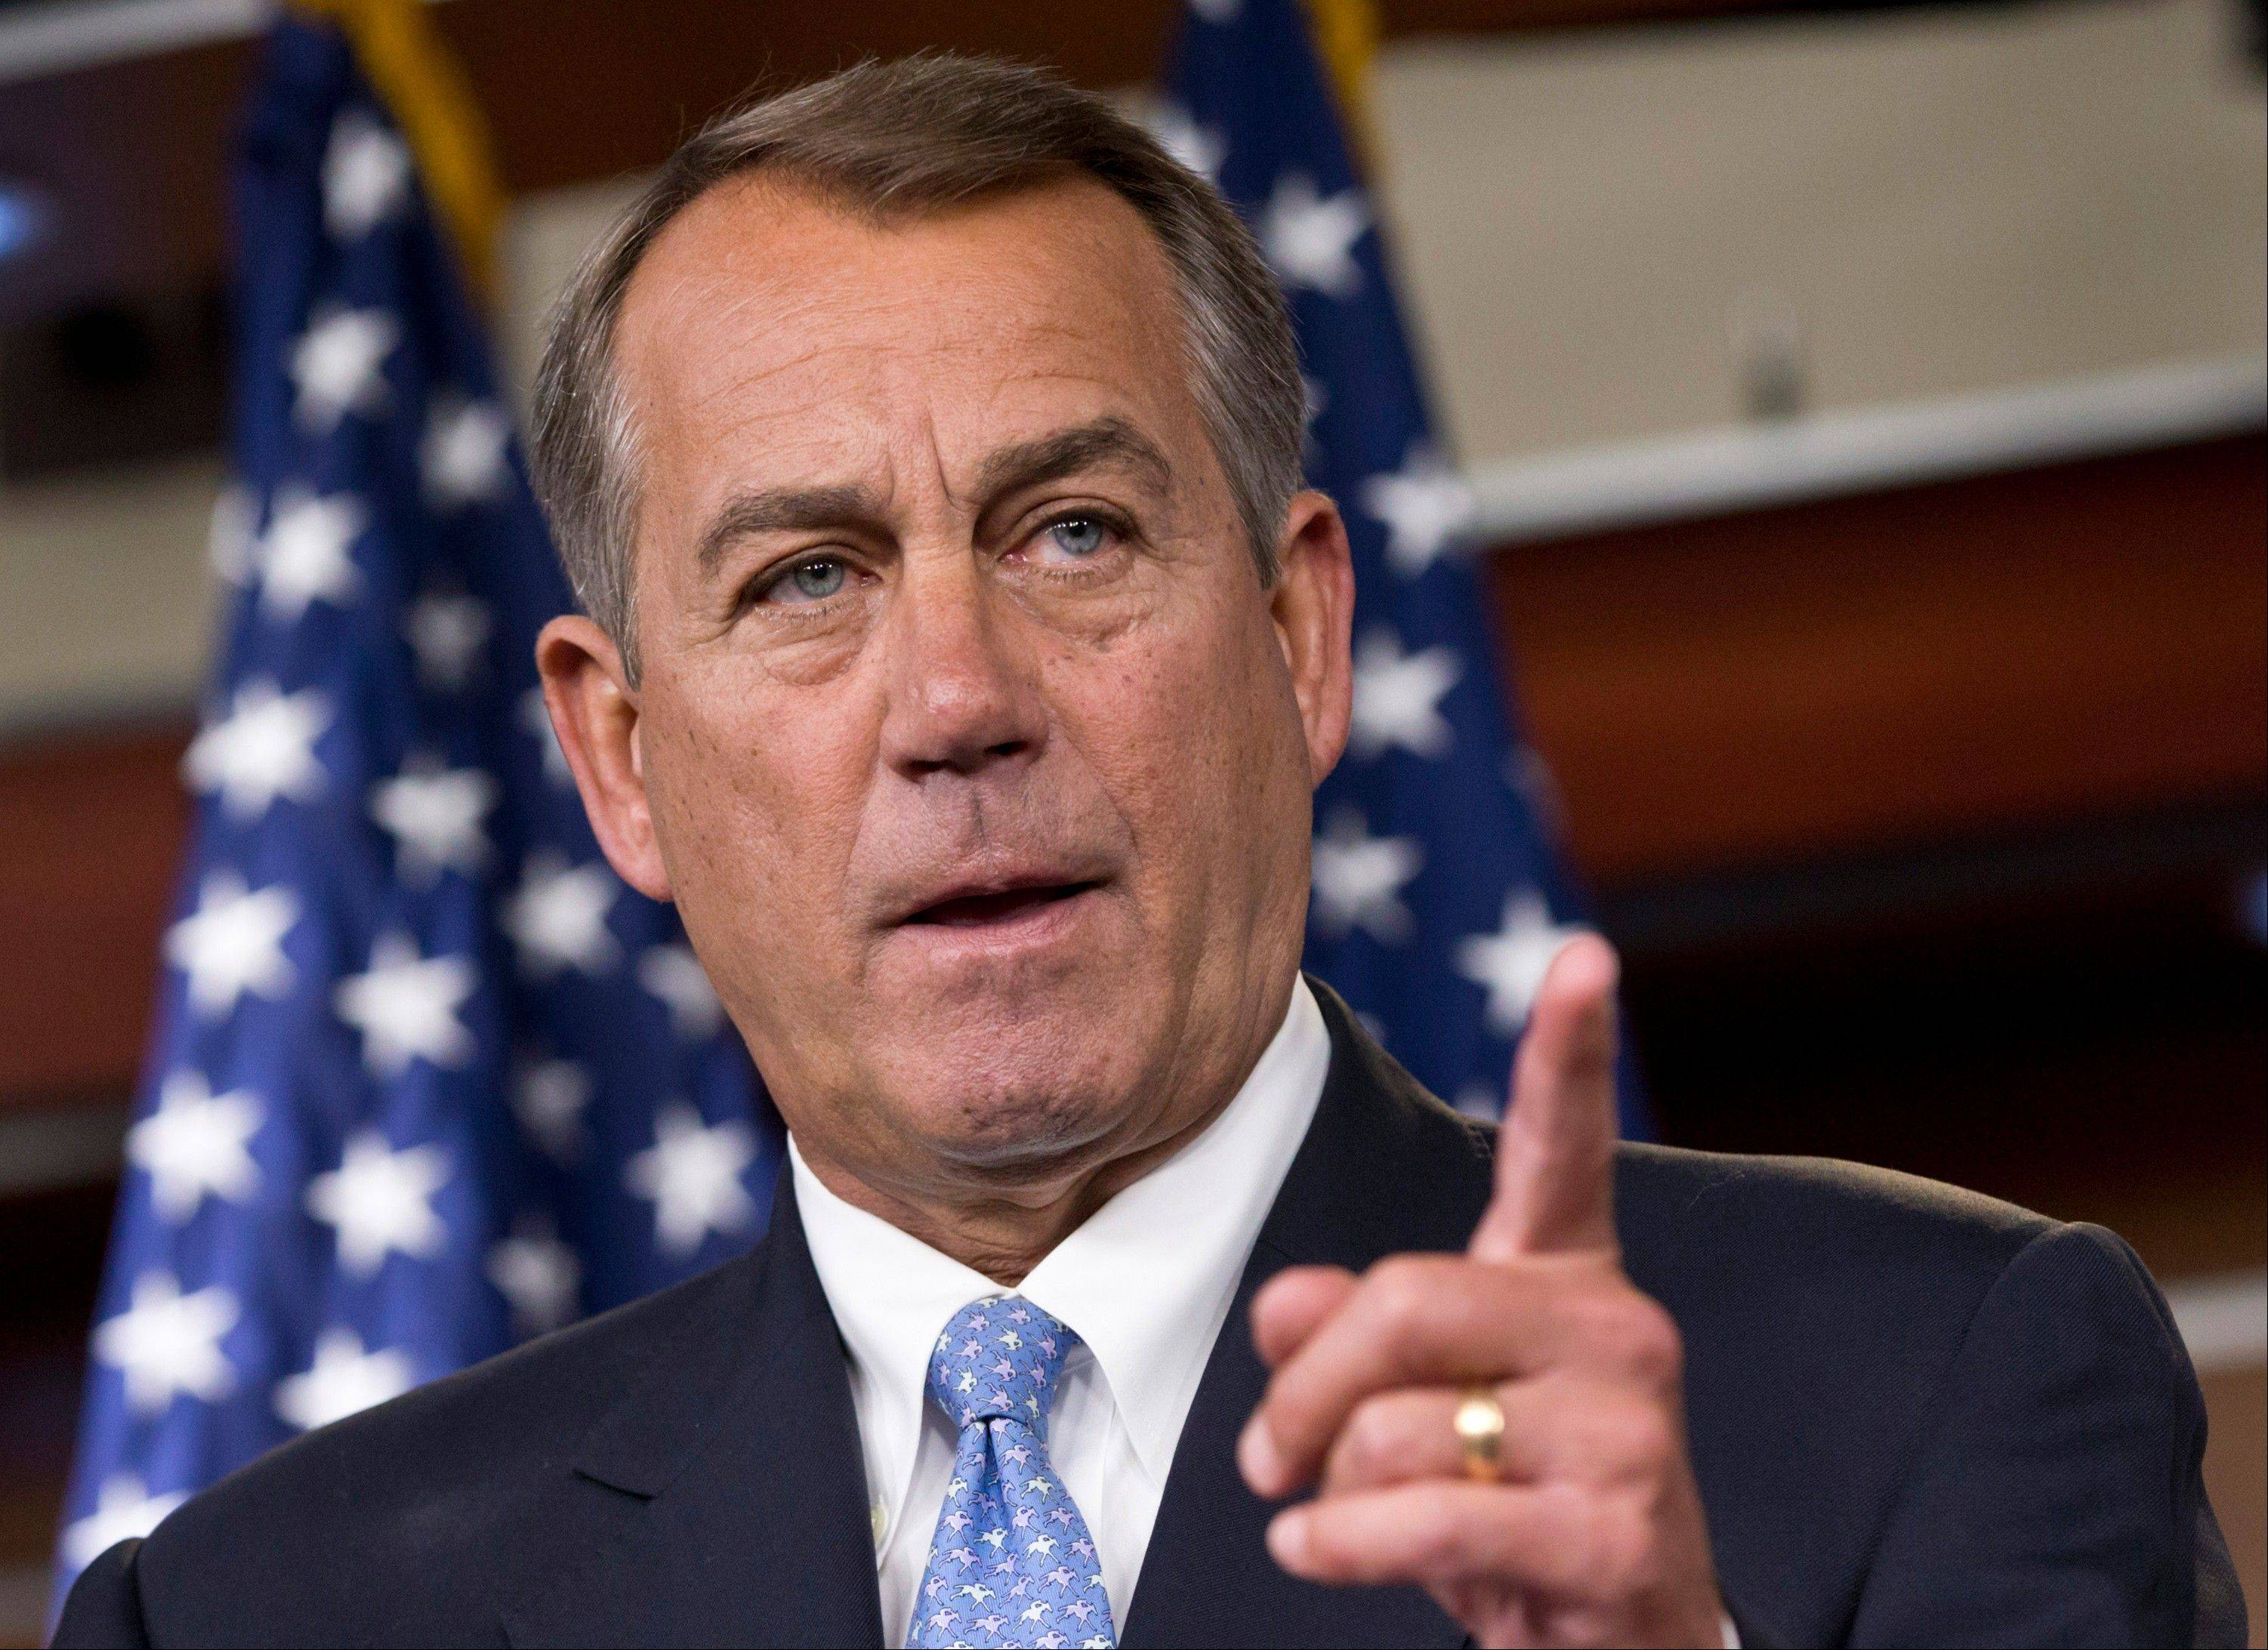 The GOP-led House of Representatives, led by Speaker of the House John Boehner, seen here, has tried 38 times to eliminate, defund or scale back the administration's health care reform law since Republicans took control of the chamber in January 2011.